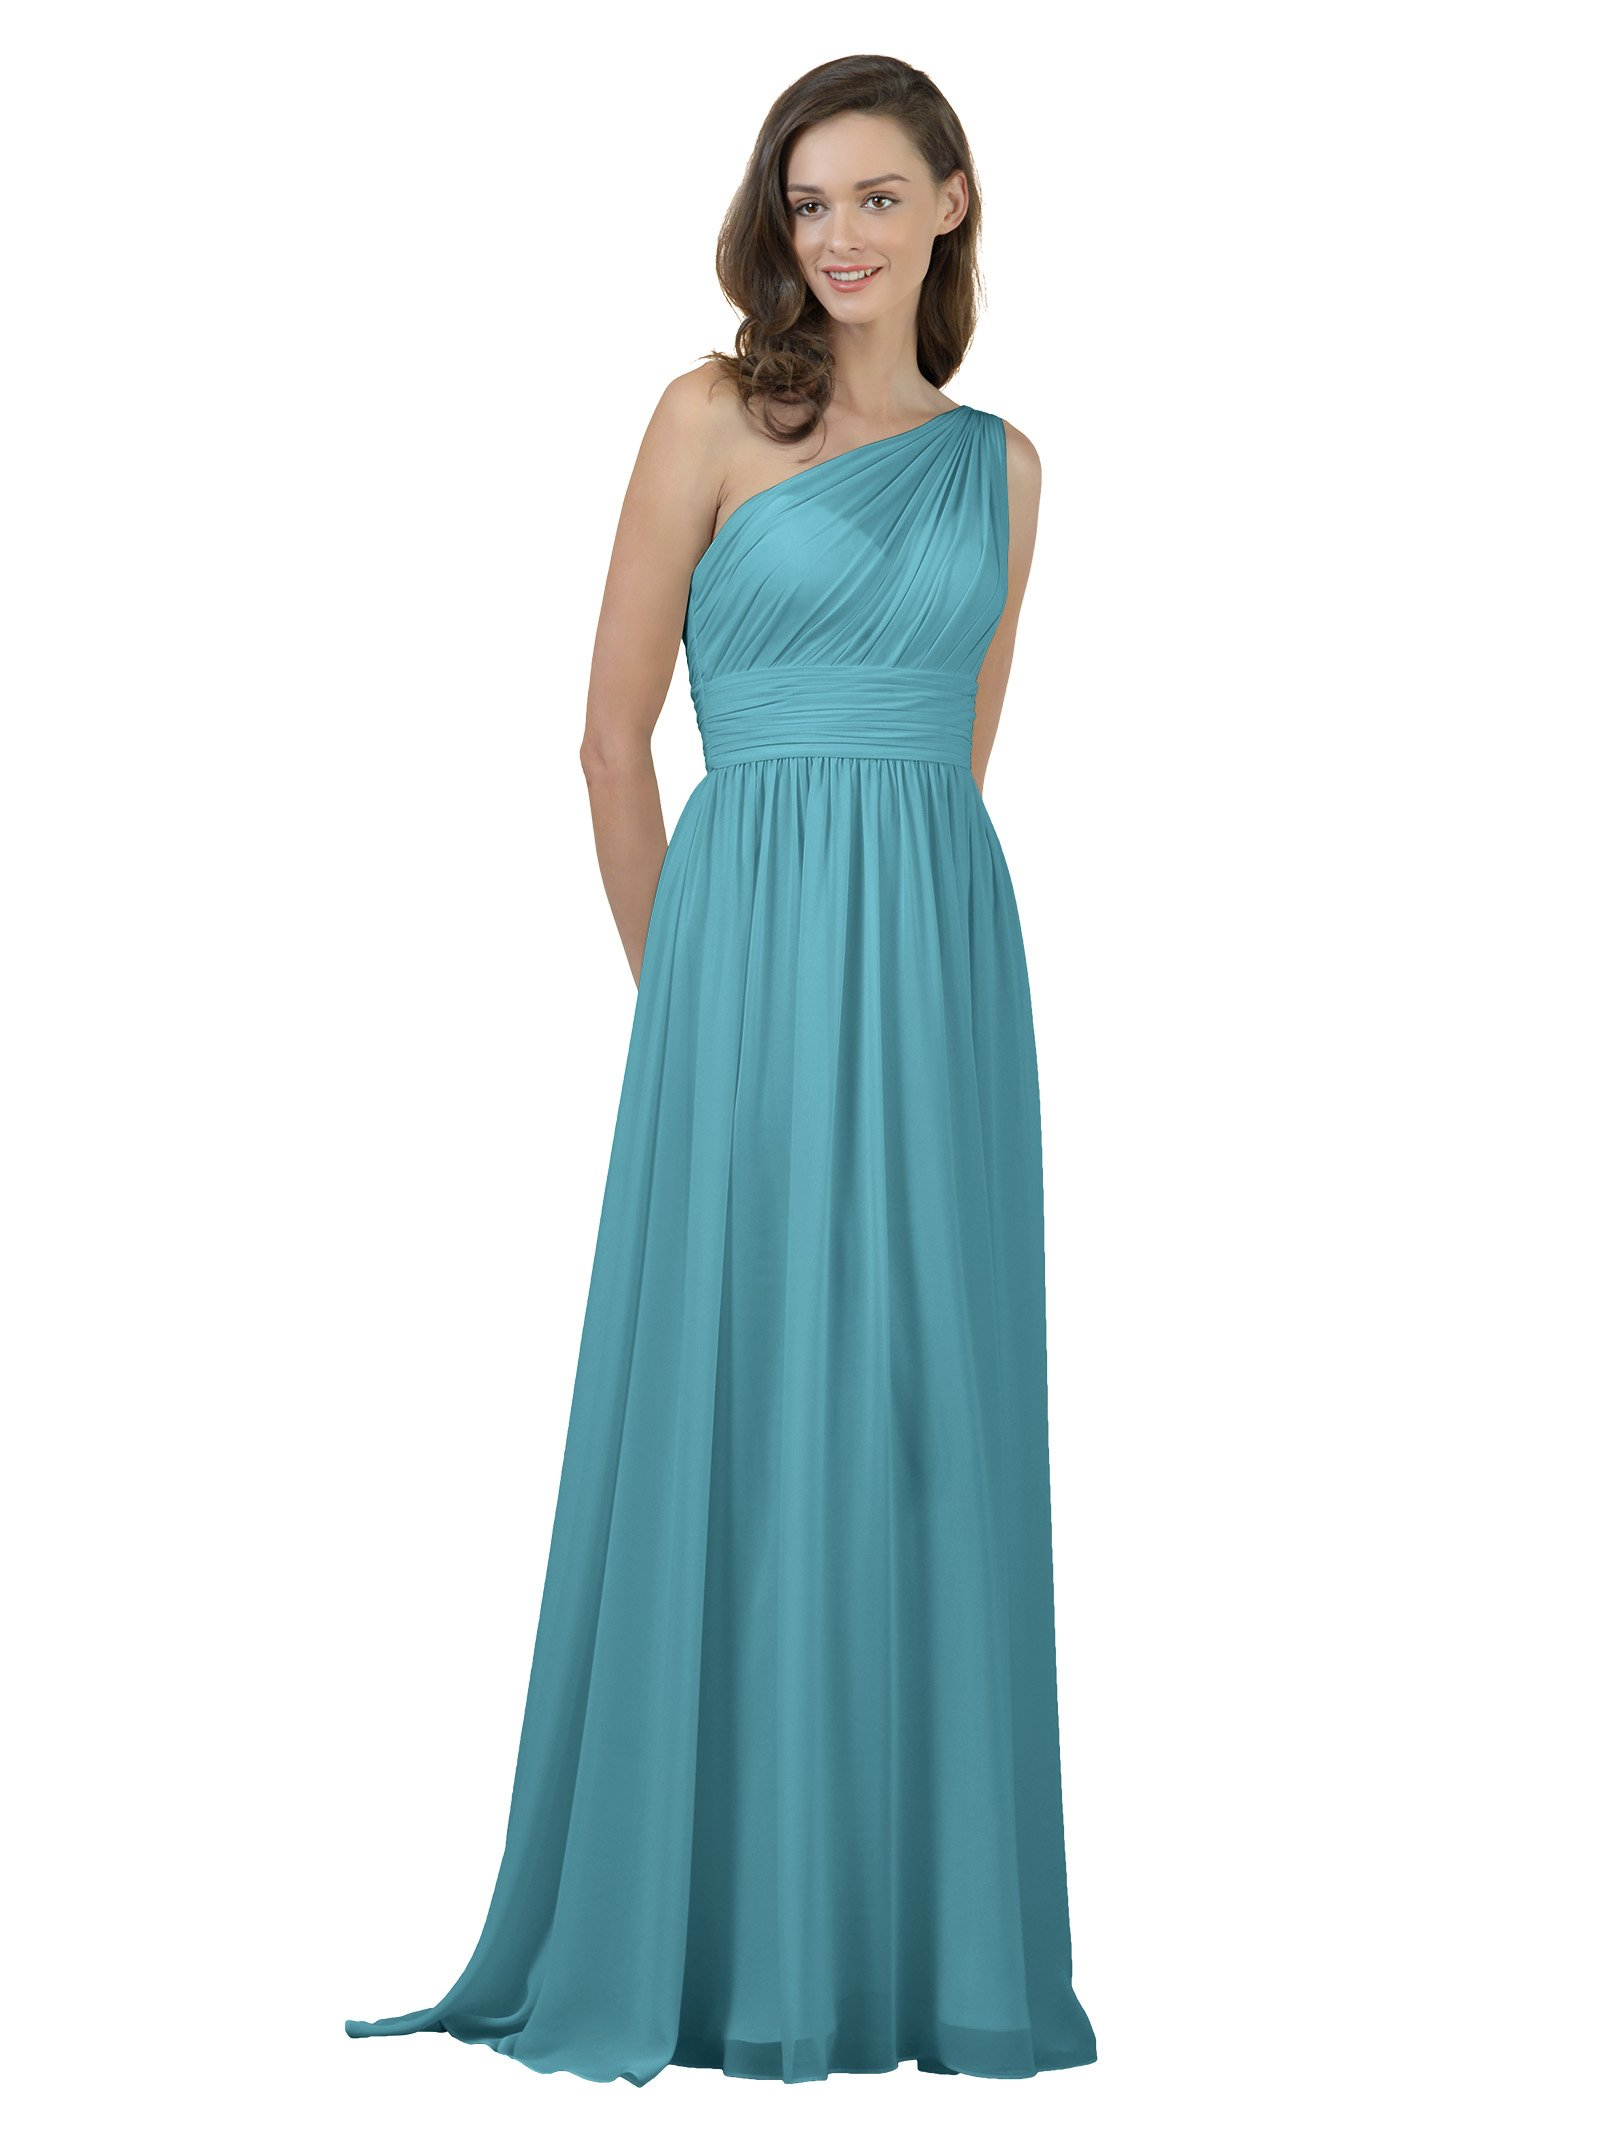 Turquoise bridesmaid dresses in long or short size